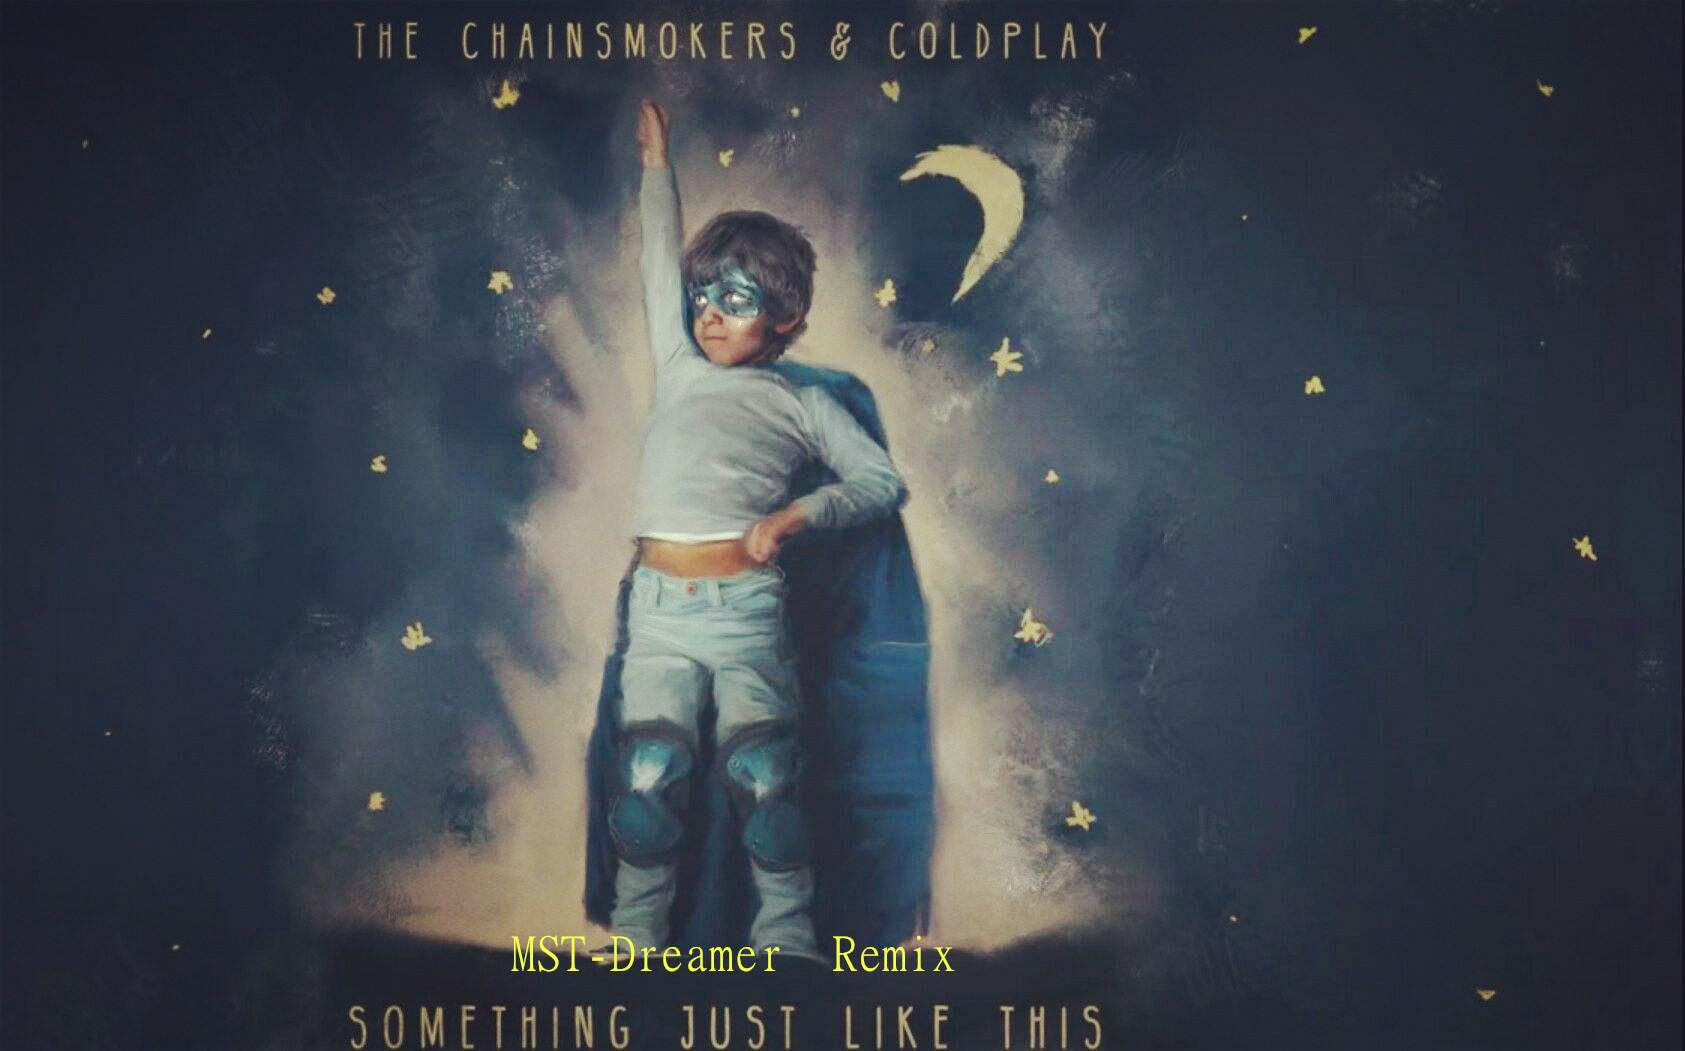 40somethingmag图片_the chainsmokers - something just like this(mst-dreamer remix)